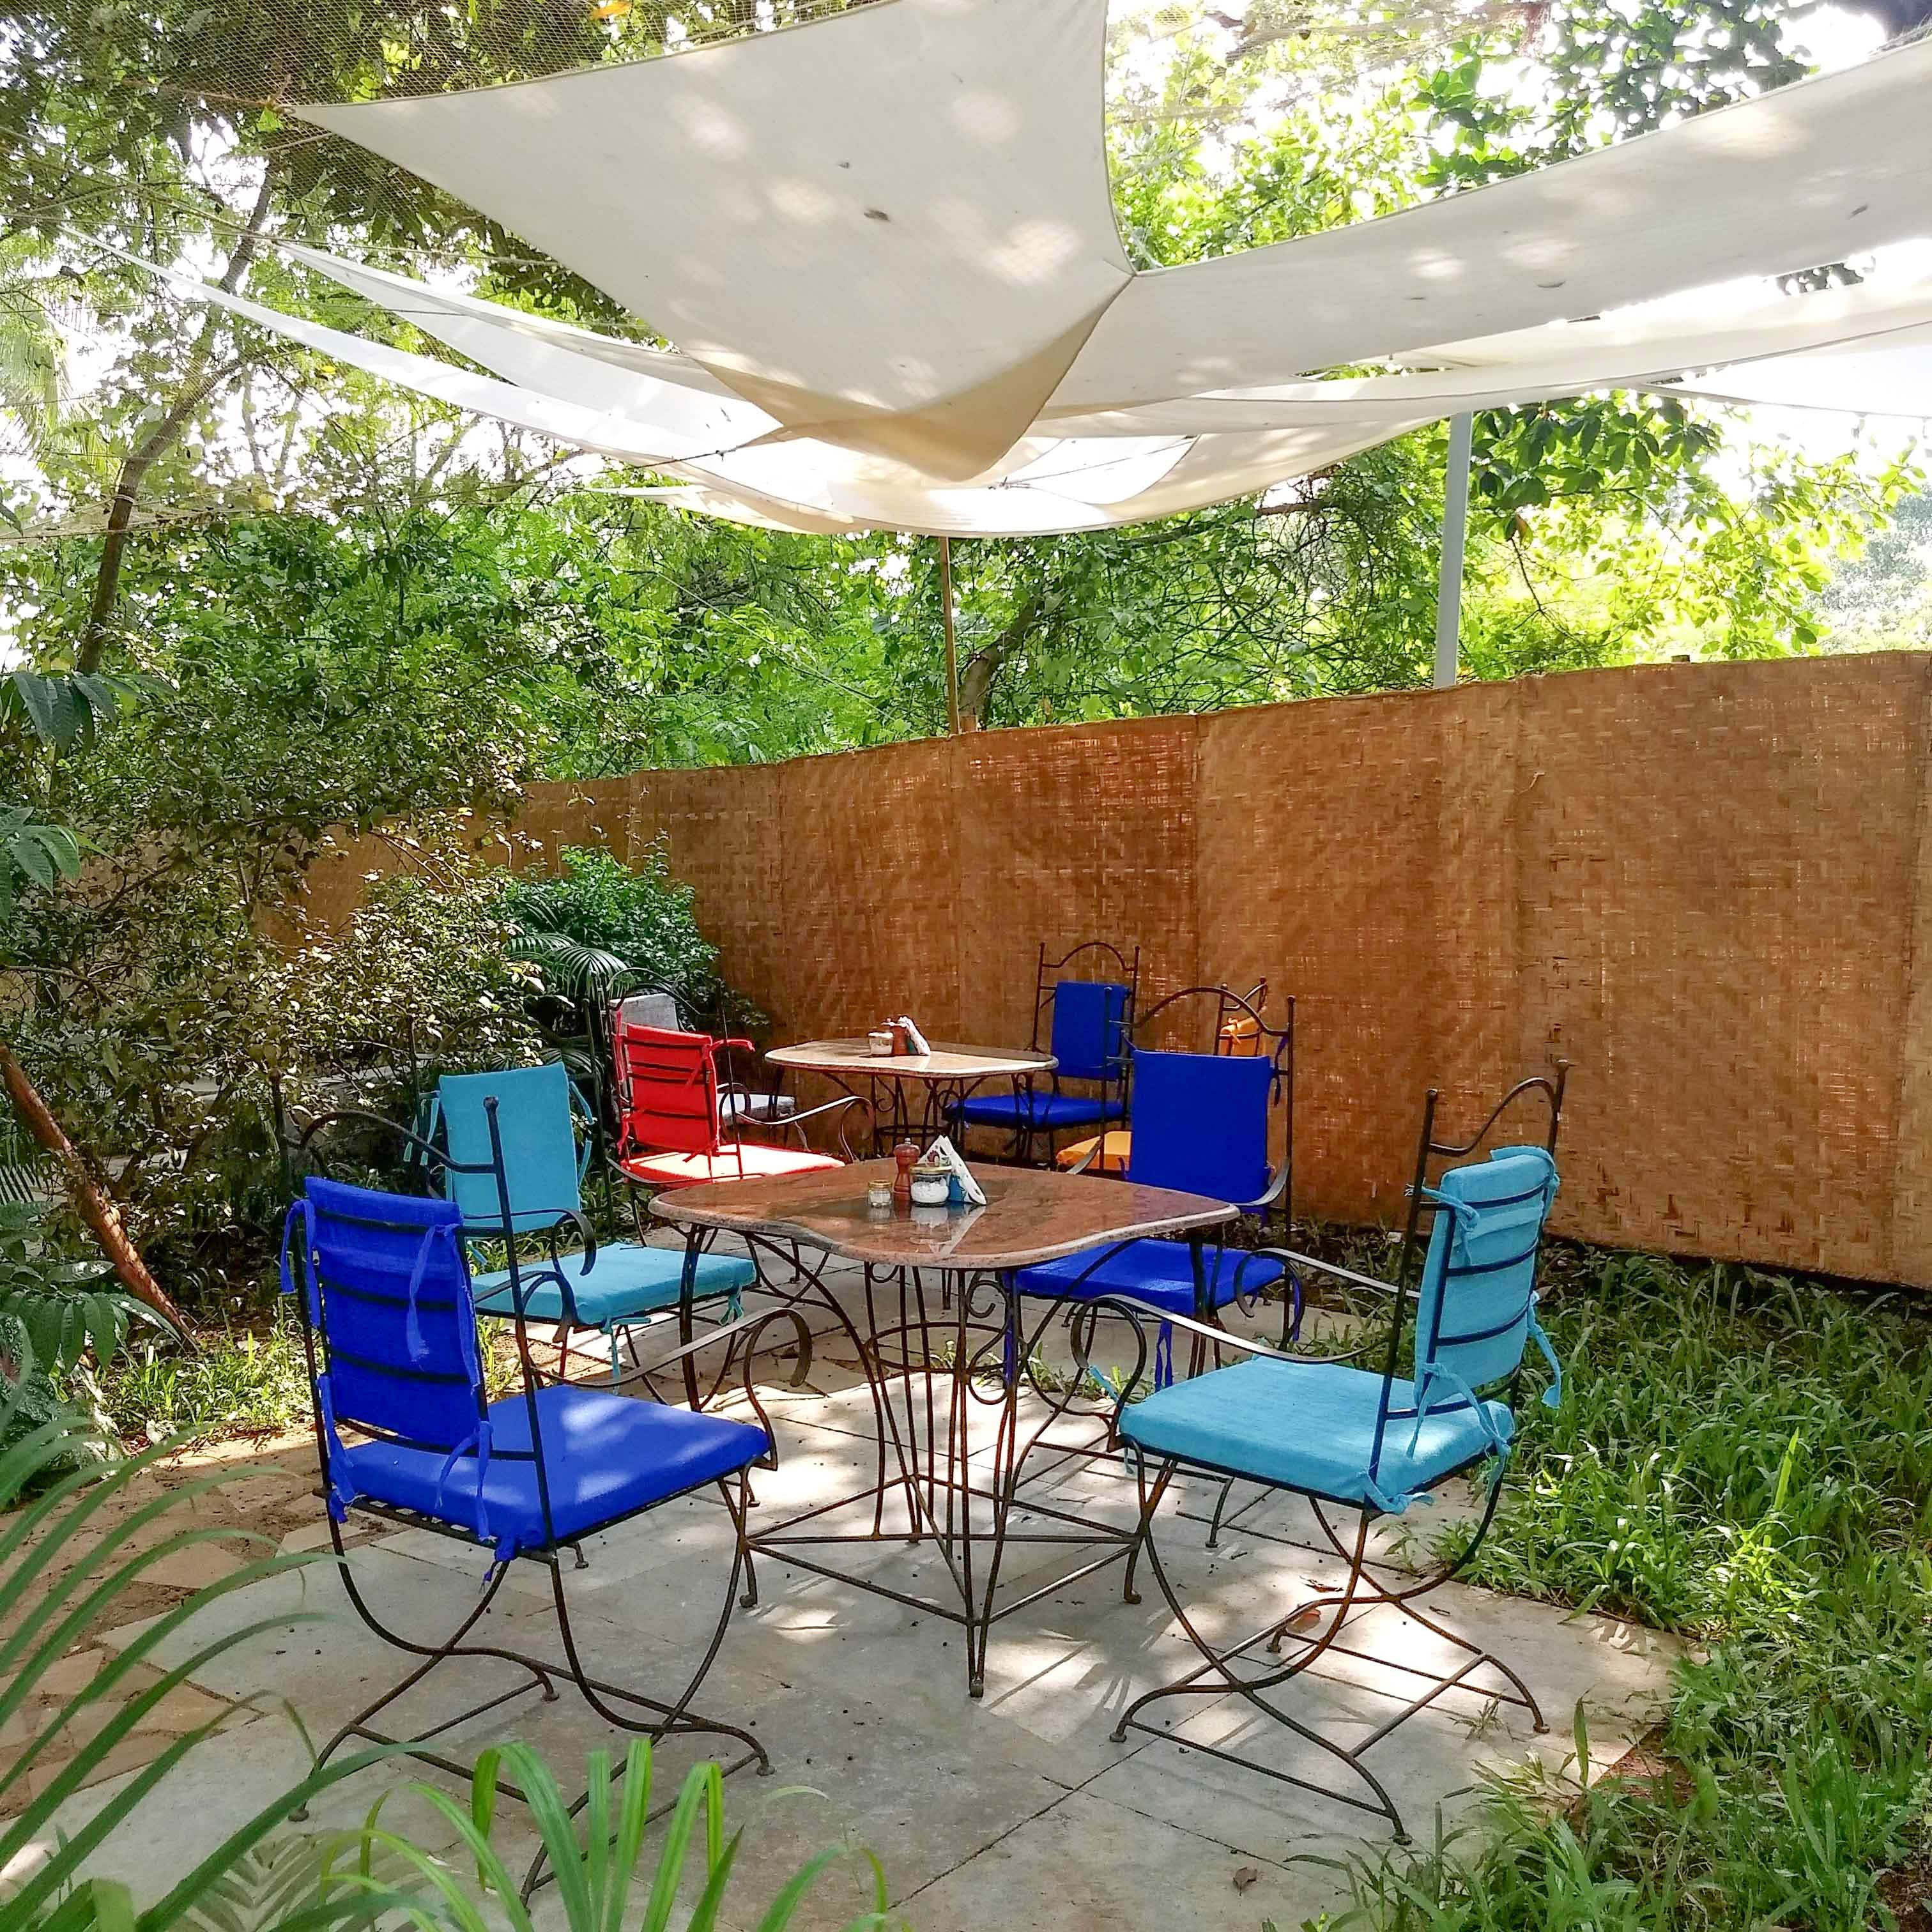 Patio,Backyard,Yard,Property,Shade,Garden,Table,Furniture,Real estate,House